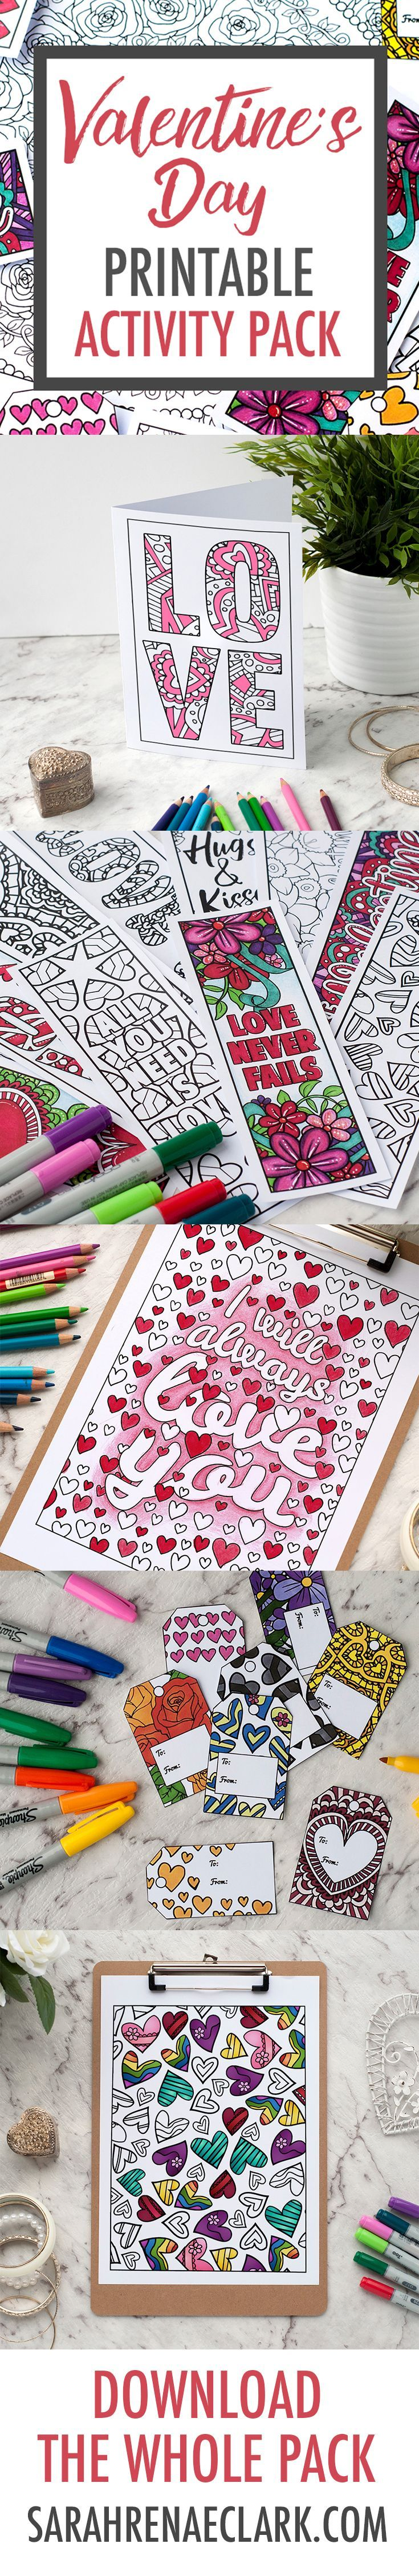 77cf153fdcbece268b296418787a3e5b - Valentine's Day Printable Activity Pack | Full of Valentine's Day coloring...